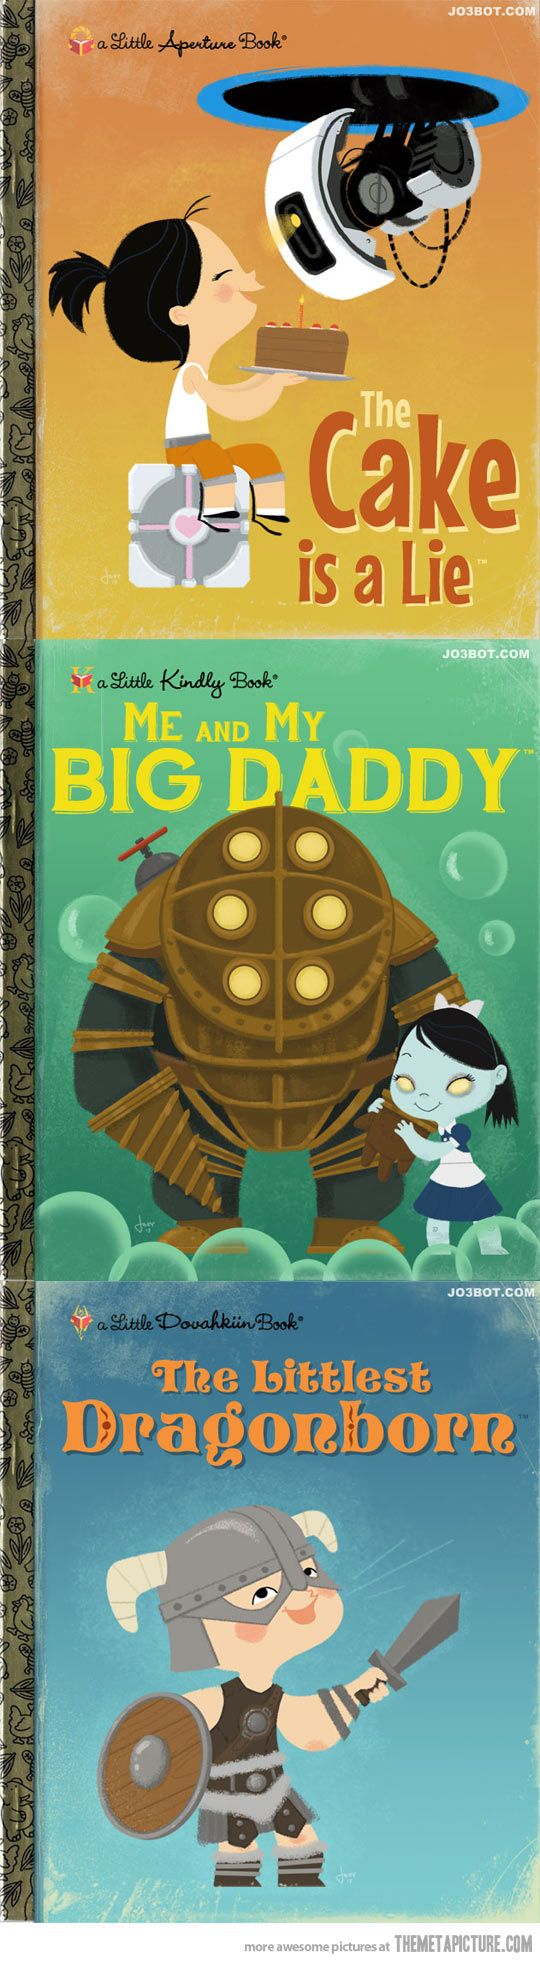 Books for little gamers…[video games in the style of little golden books....<3 it. -jl-]